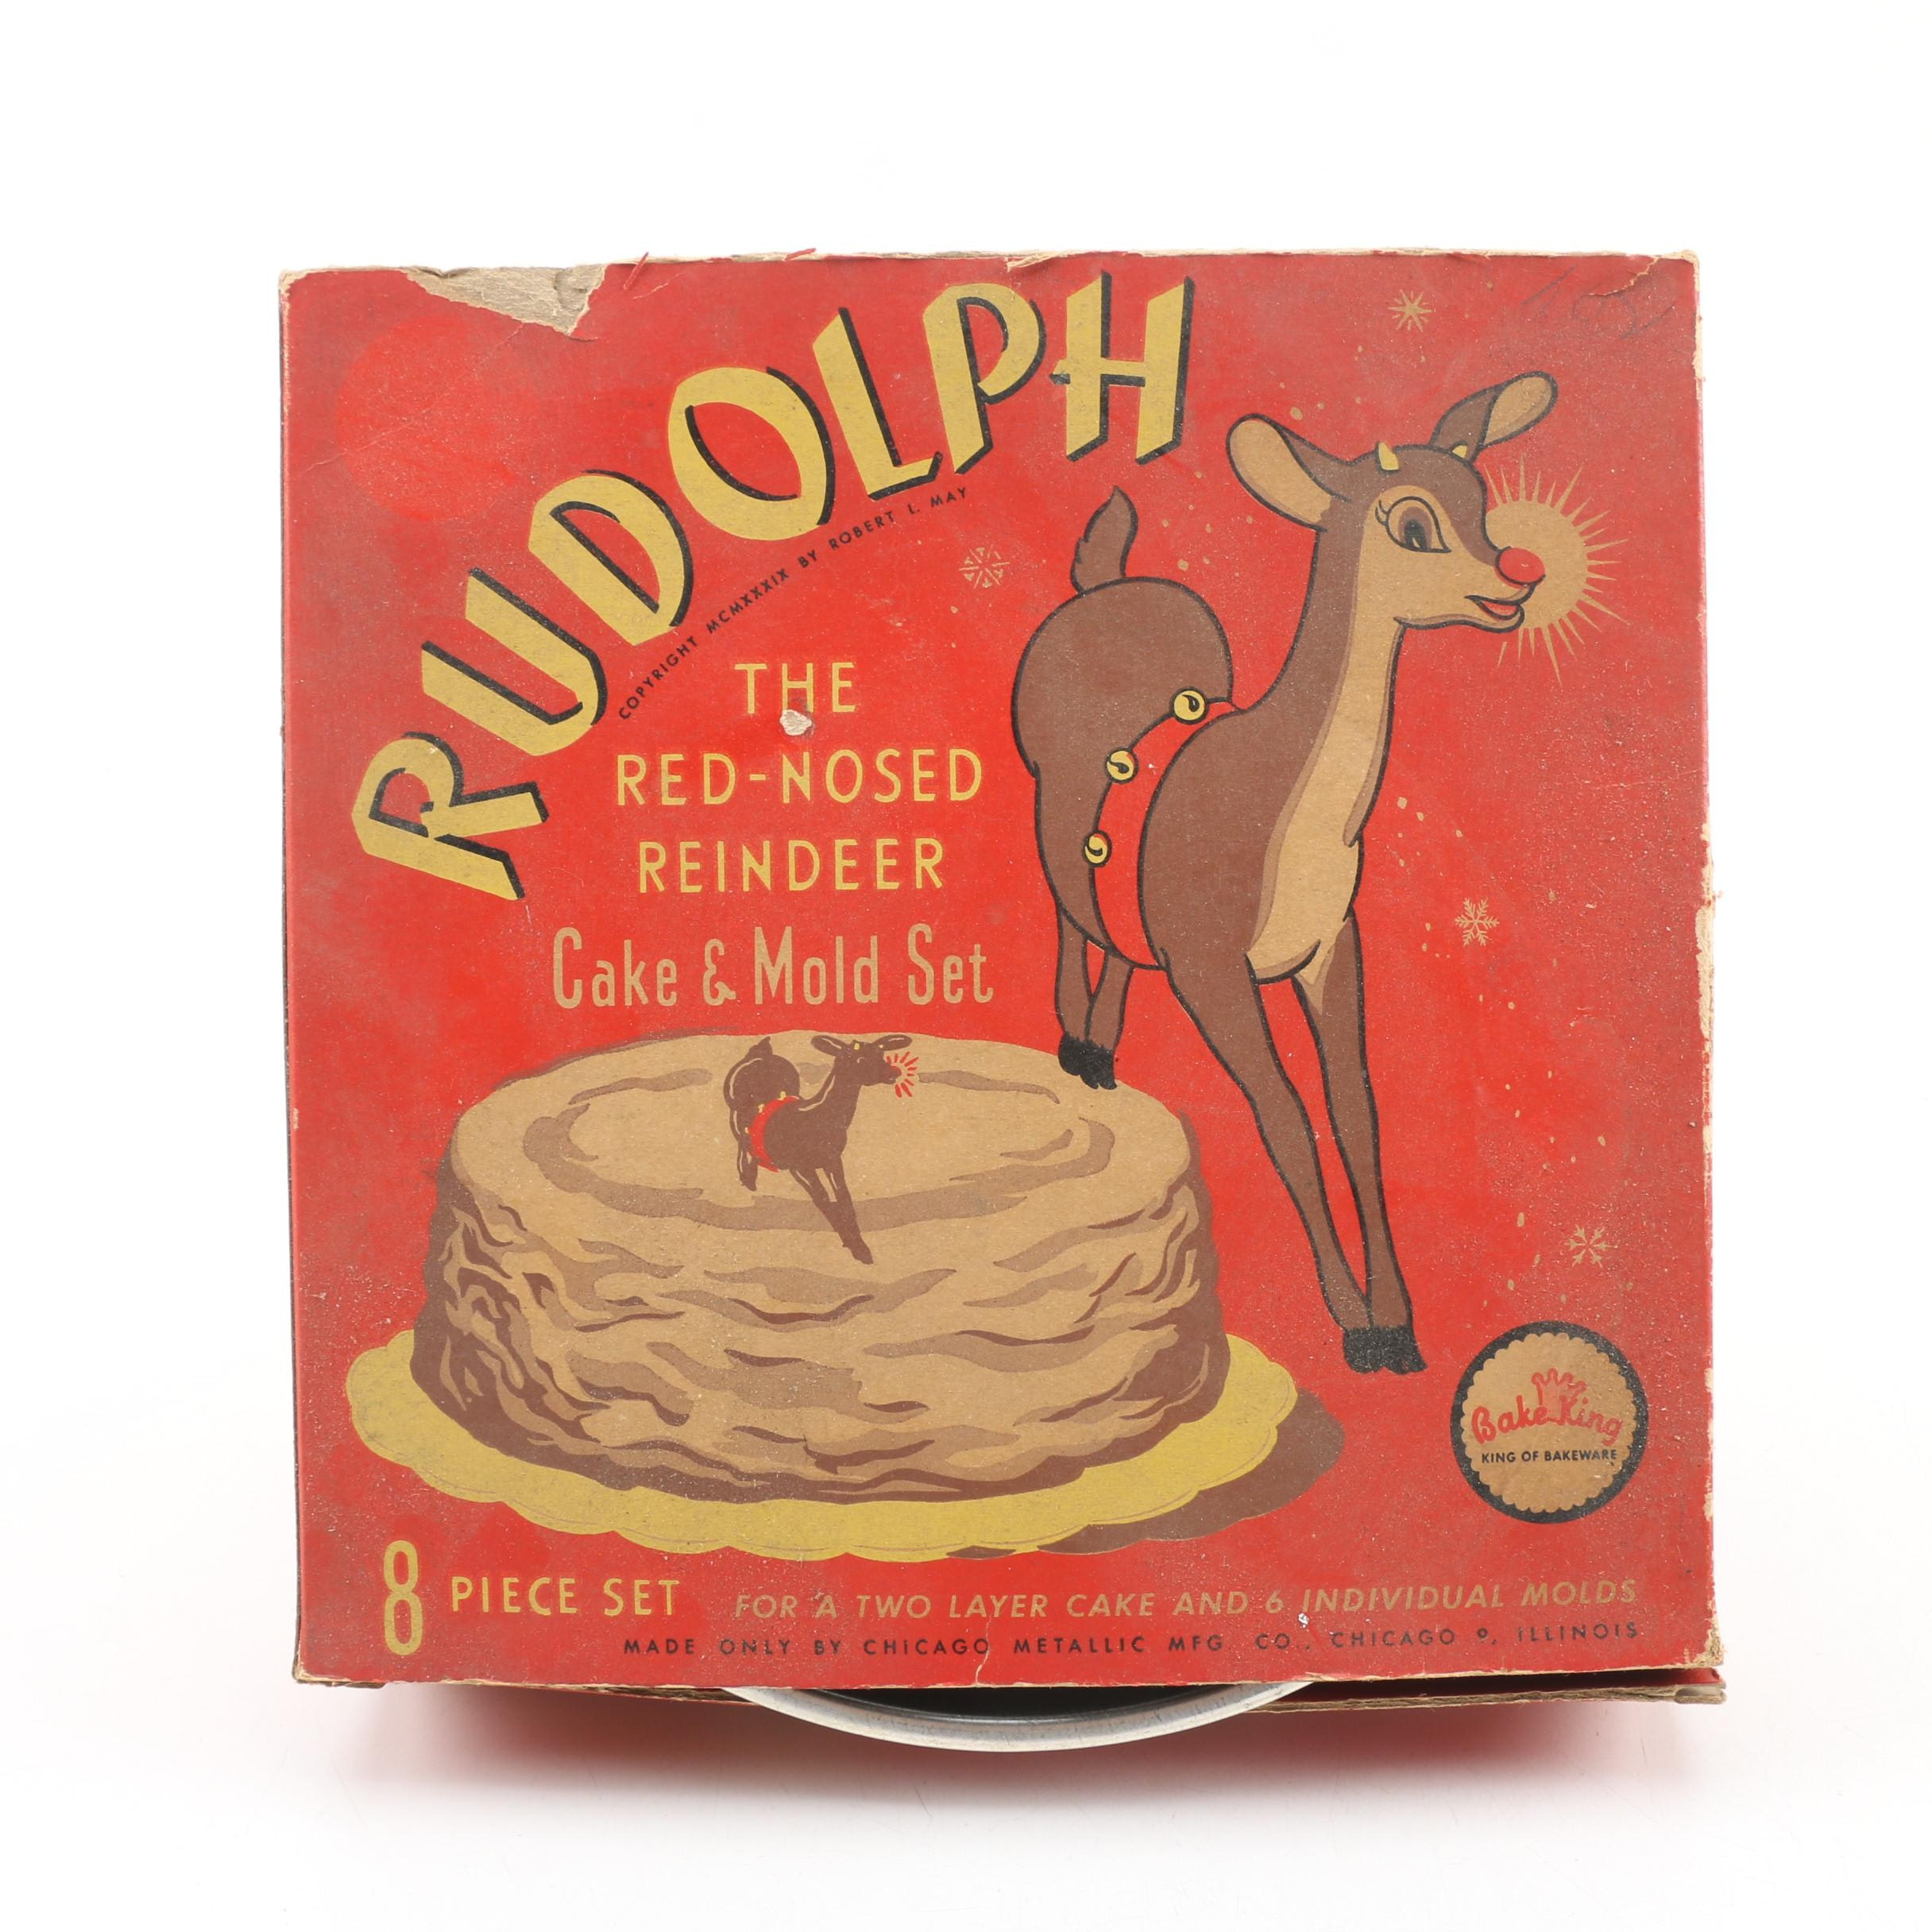 Bake King Rudolph the Red-Nosed Reindeer Cake and Mold Set, Circa 1939